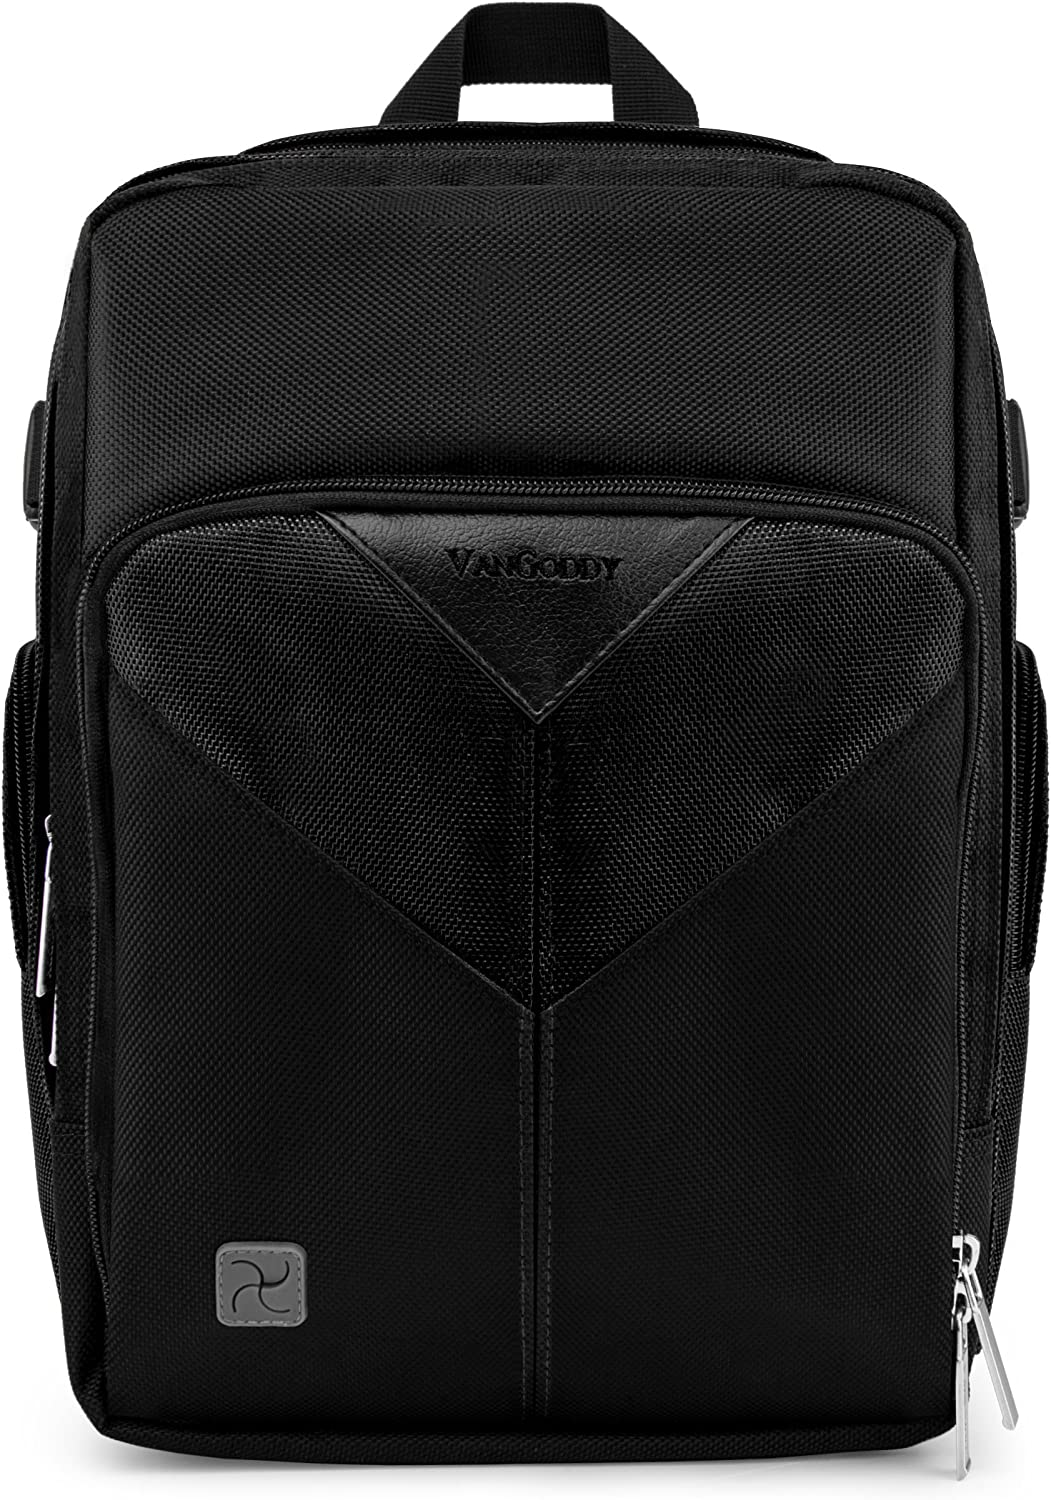 EOS Kiss Series Compact Digital SLR Cameras and Mini Tripod and Screen Protector VanGoddy Sparta Travel Backpack for Canon EOS Green EOS Rebel